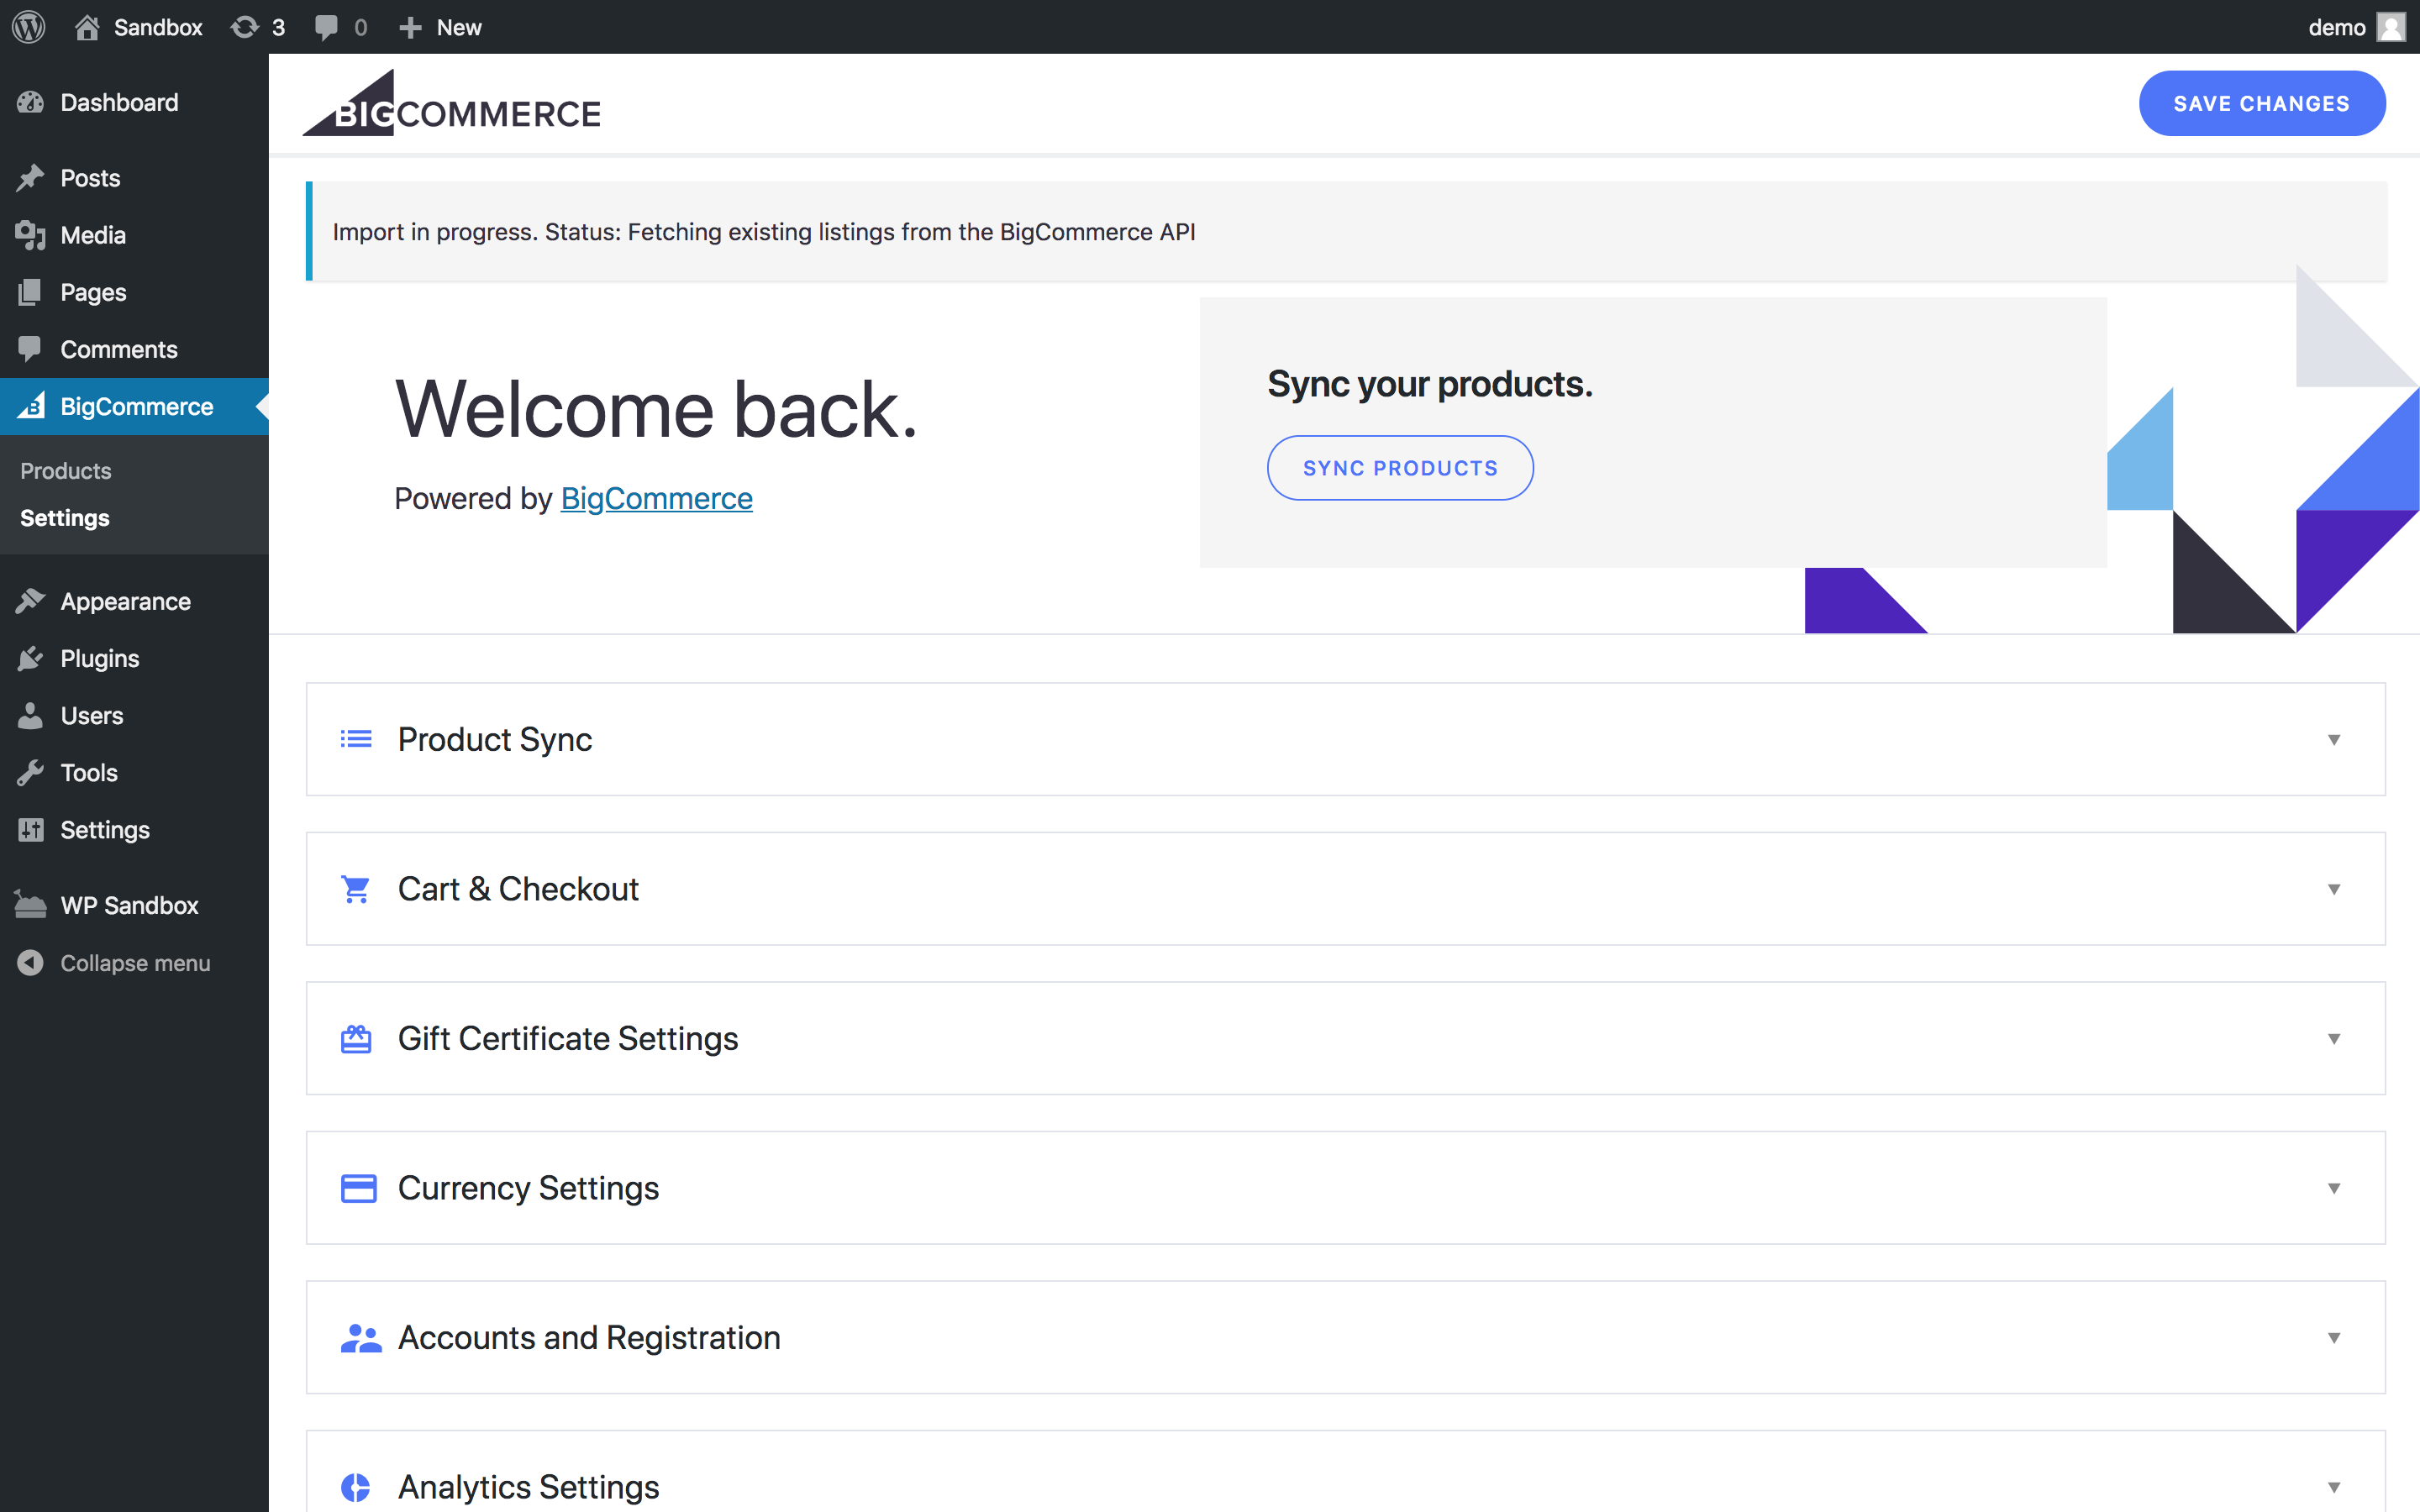 BigCommerce for Wordpress plugin dashboard